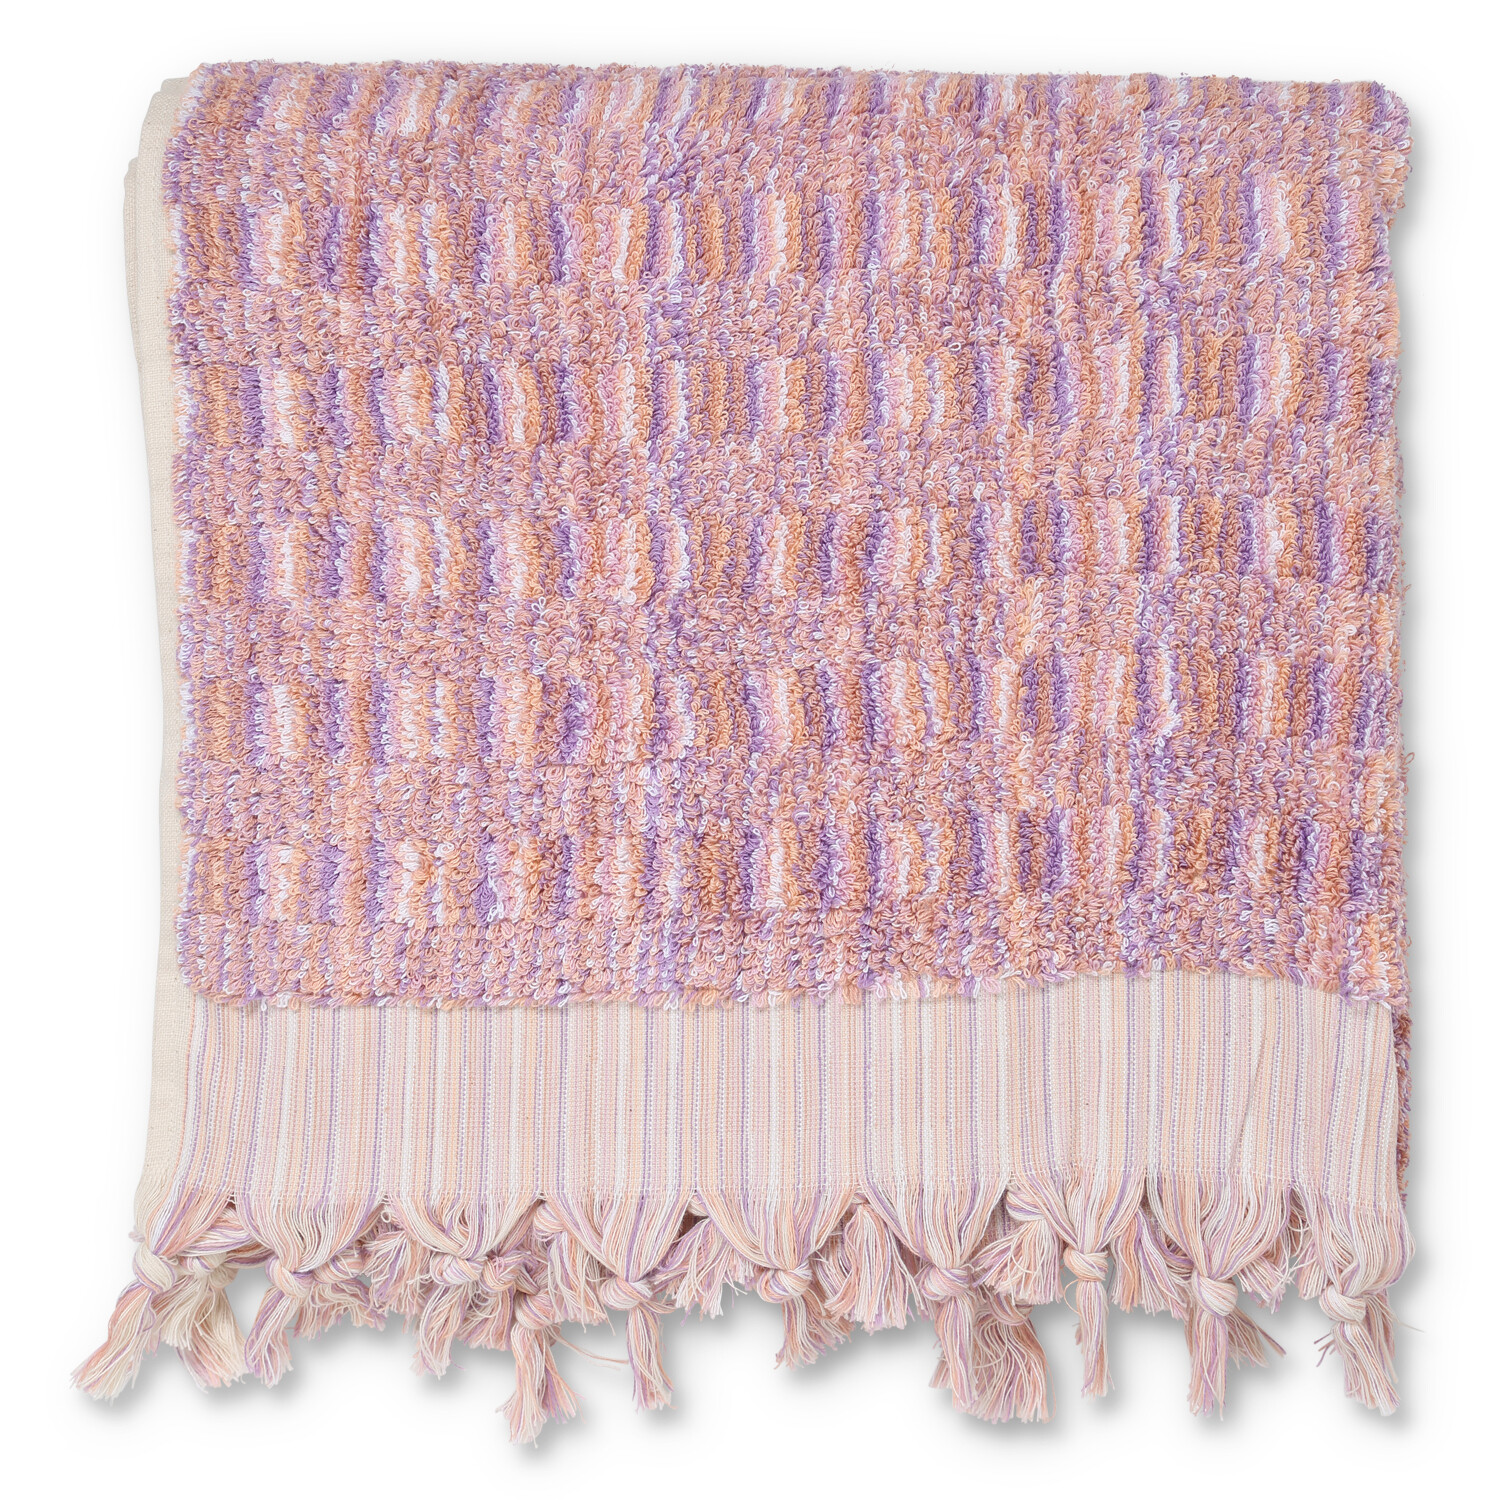 Turkish Towels - Bath Towel - Farrago